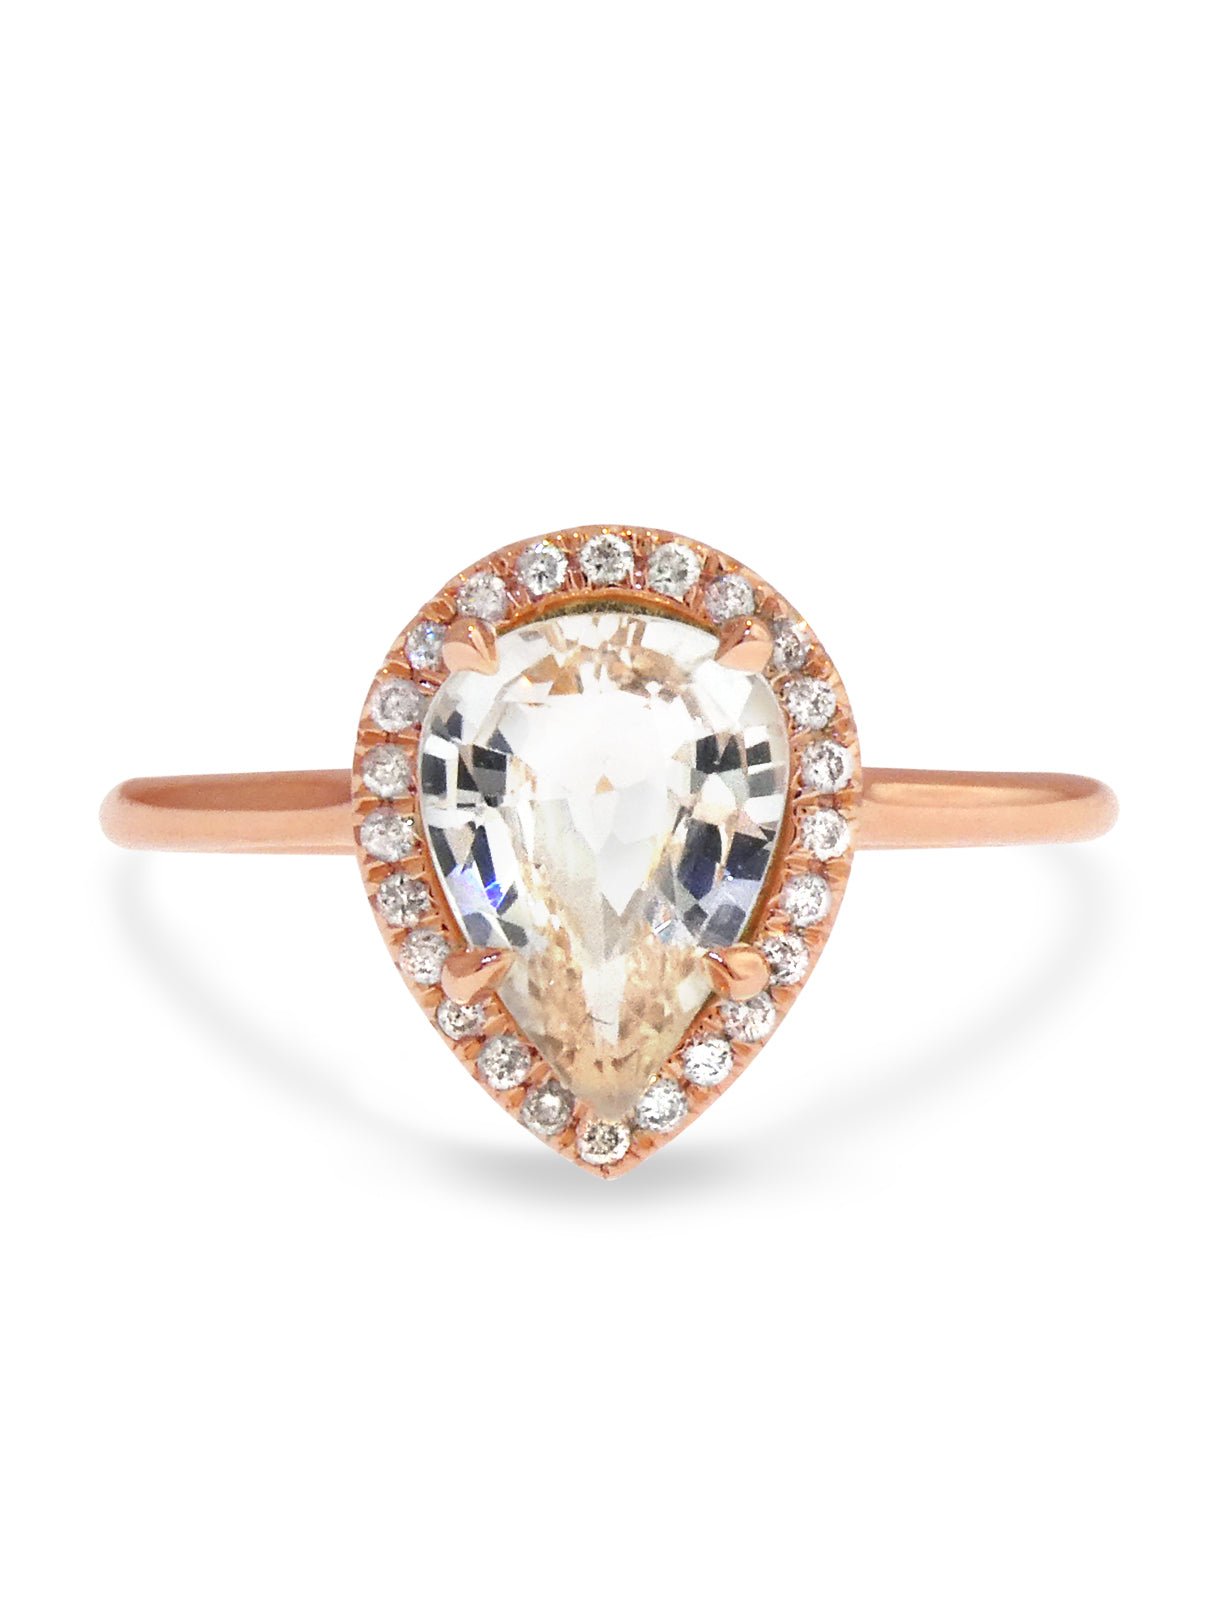 Etta Pale Peach Sapphire Halo Engagement Ring In Rose Gold Diamonds Unique Engagement Rings Nyc Custom Jewelry By Dana Walden Bridal